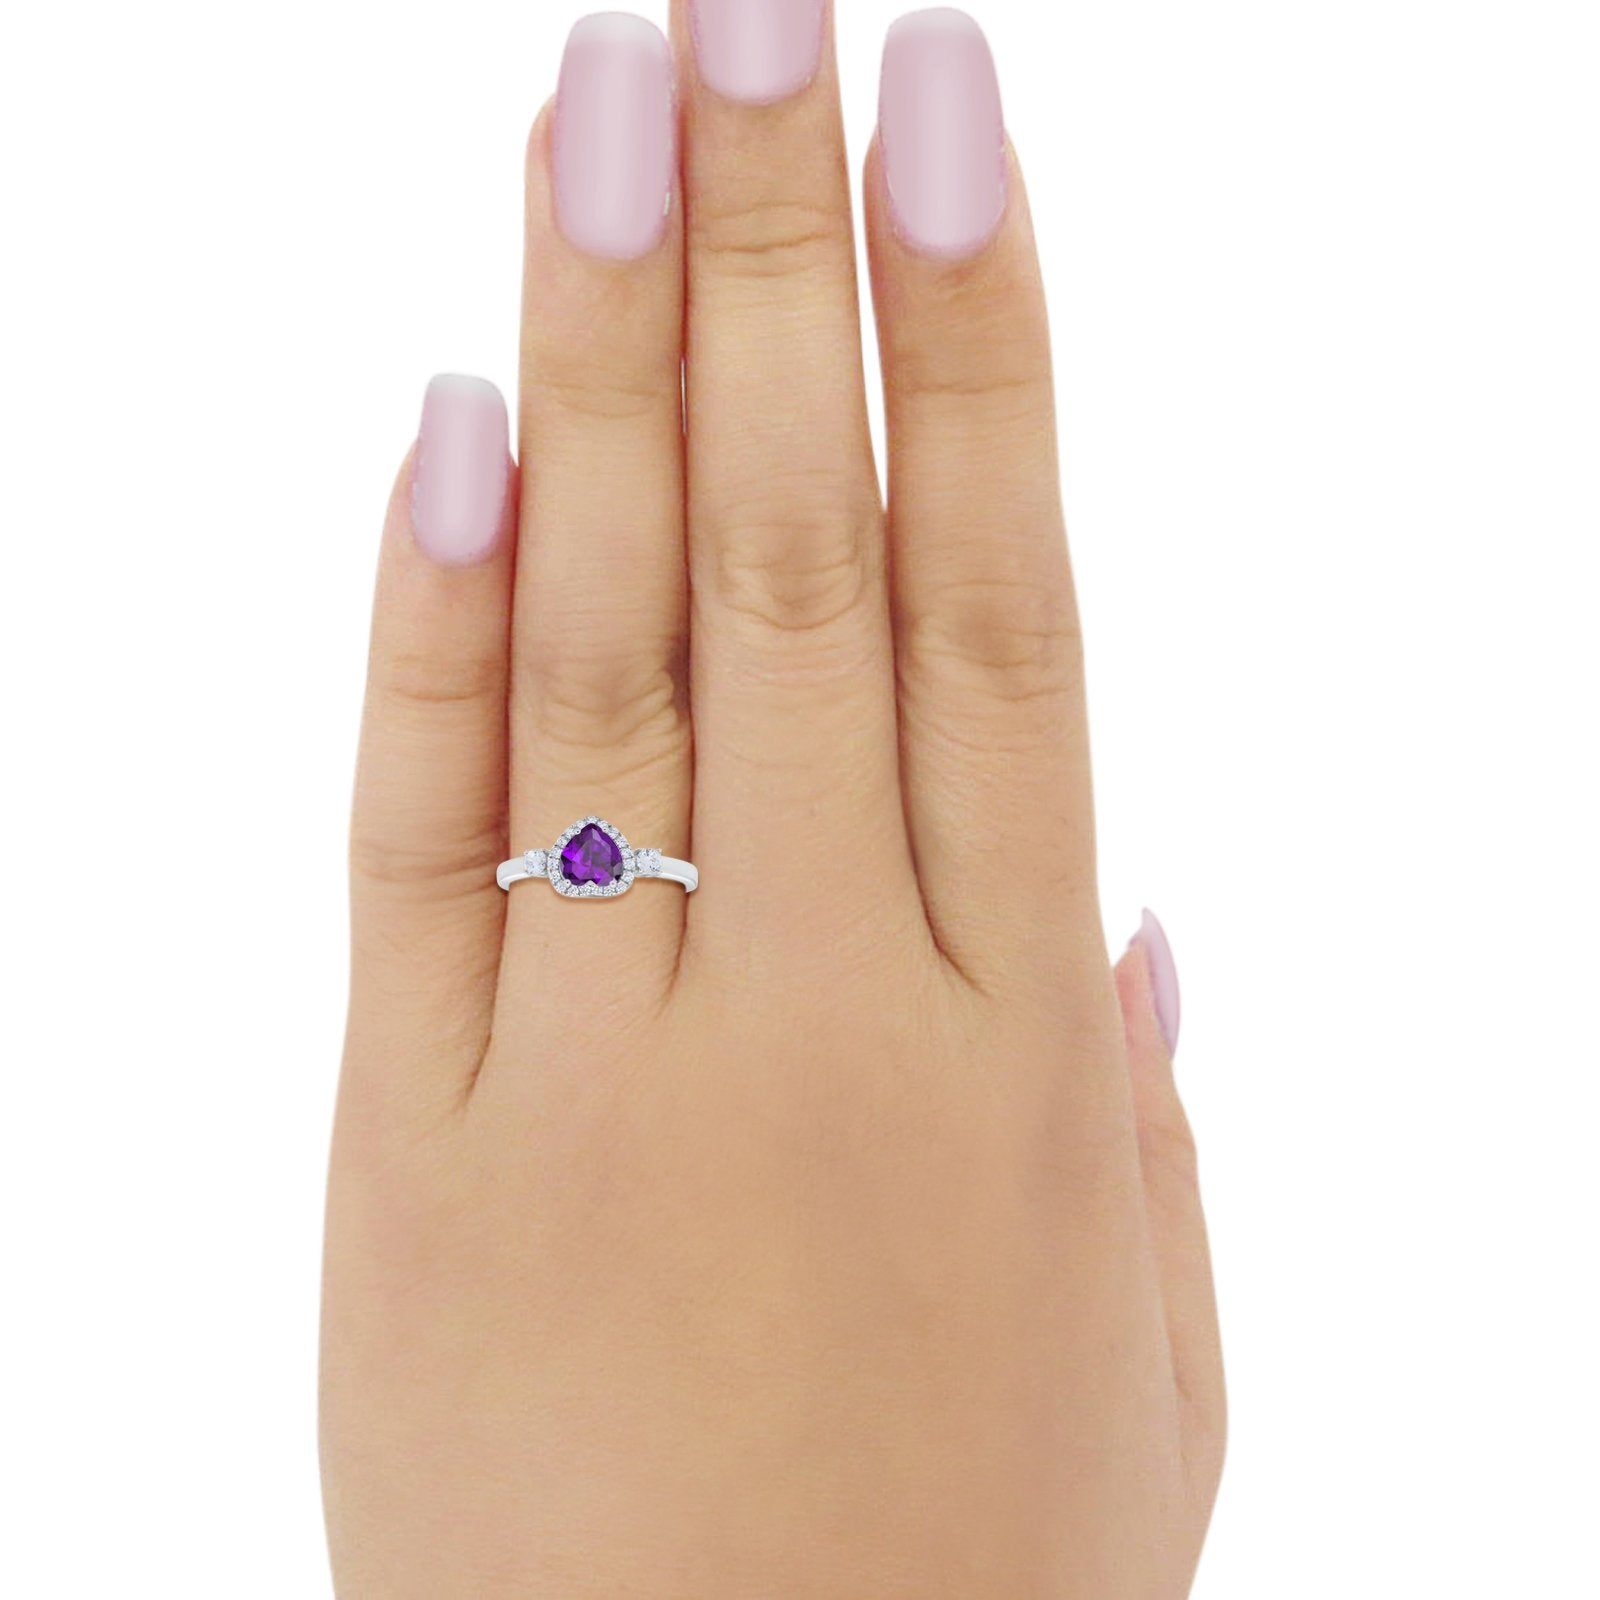 Halo Three Stone Heart Promise Ring Round Cubic Zirconia 925 Sterling Silver